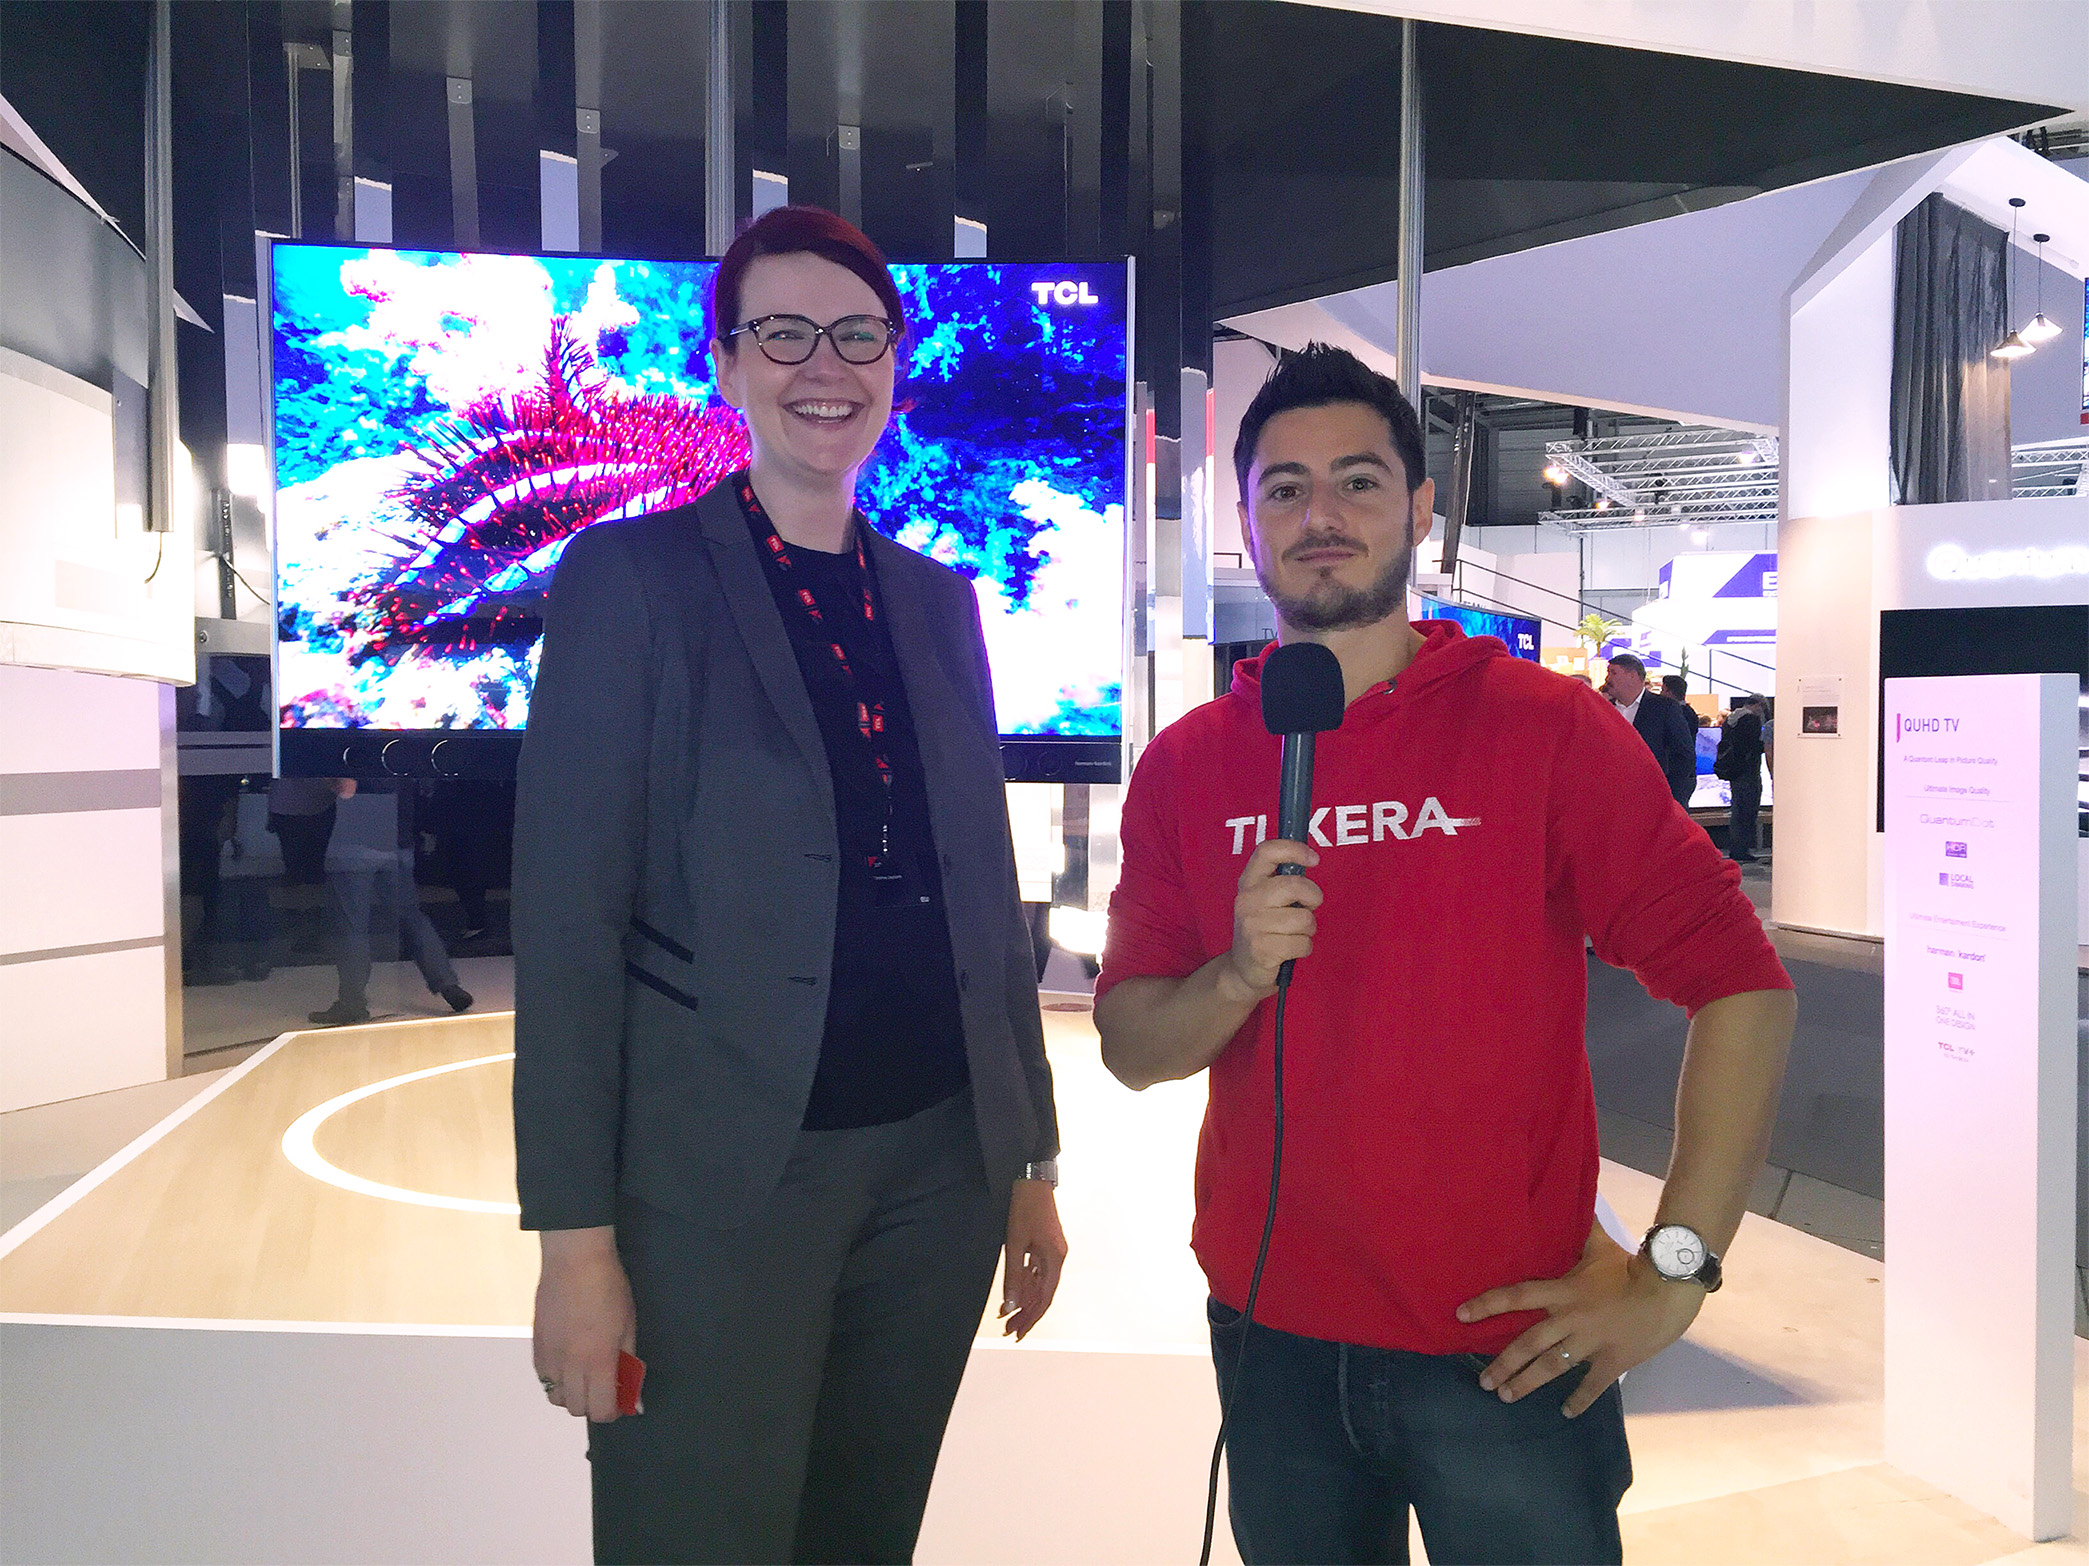 Tuxera's Claudio at TCL booth at IFA 16